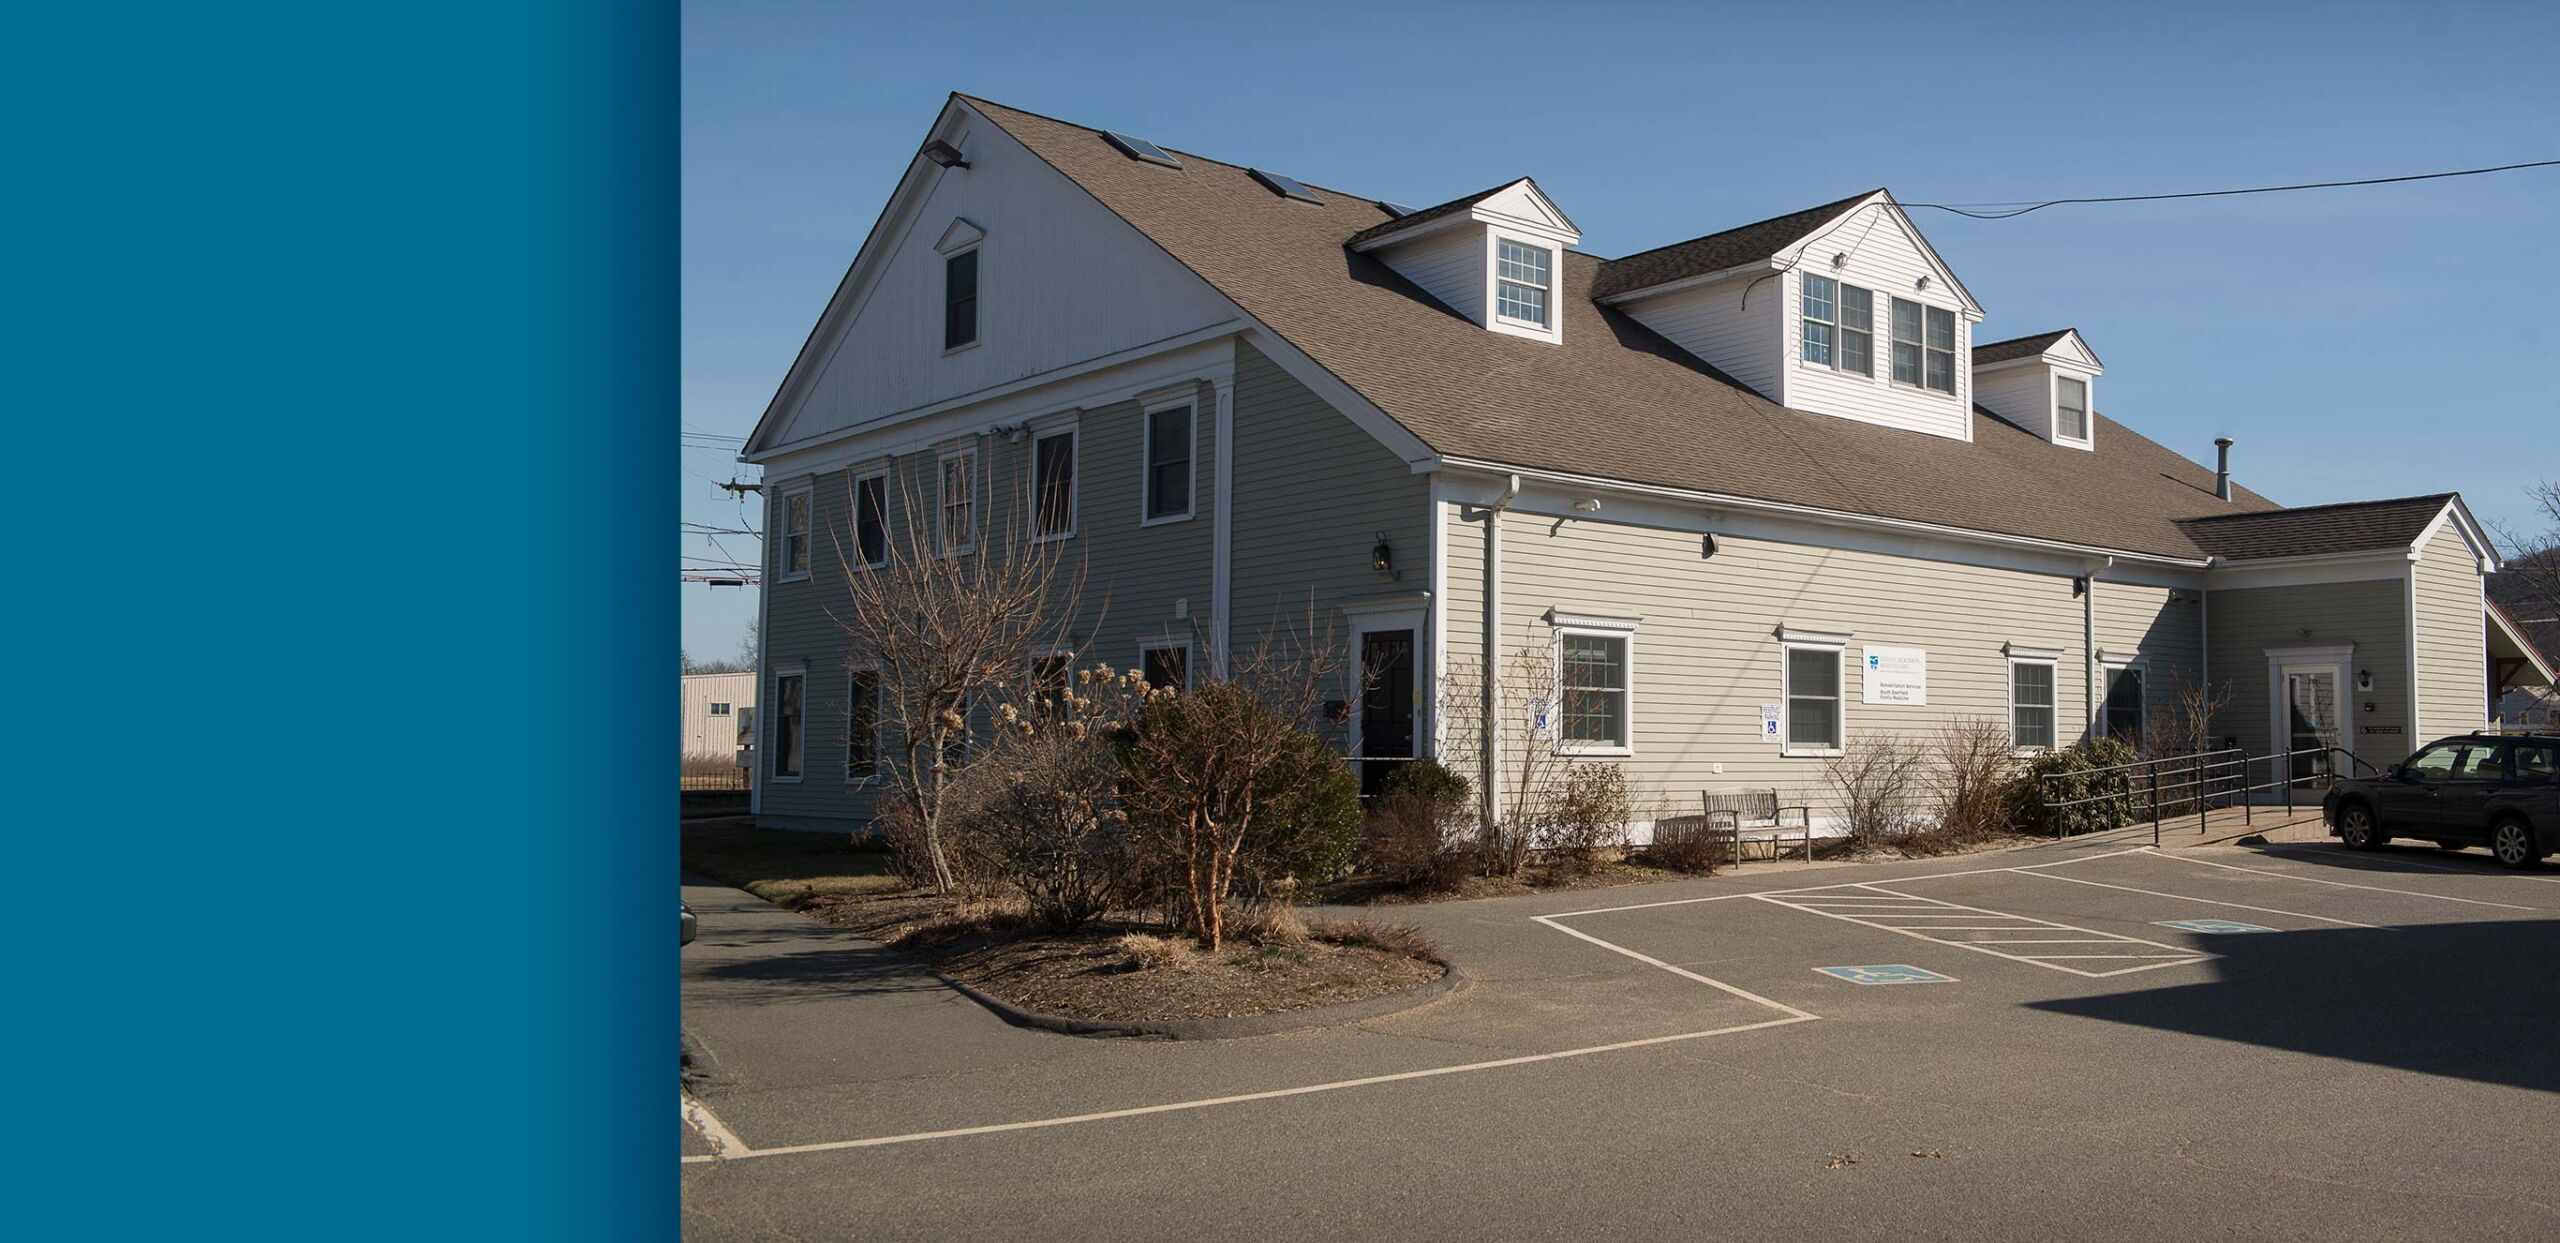 Cooley Dickinson Rehabilitation Services - South Deerfield, MA